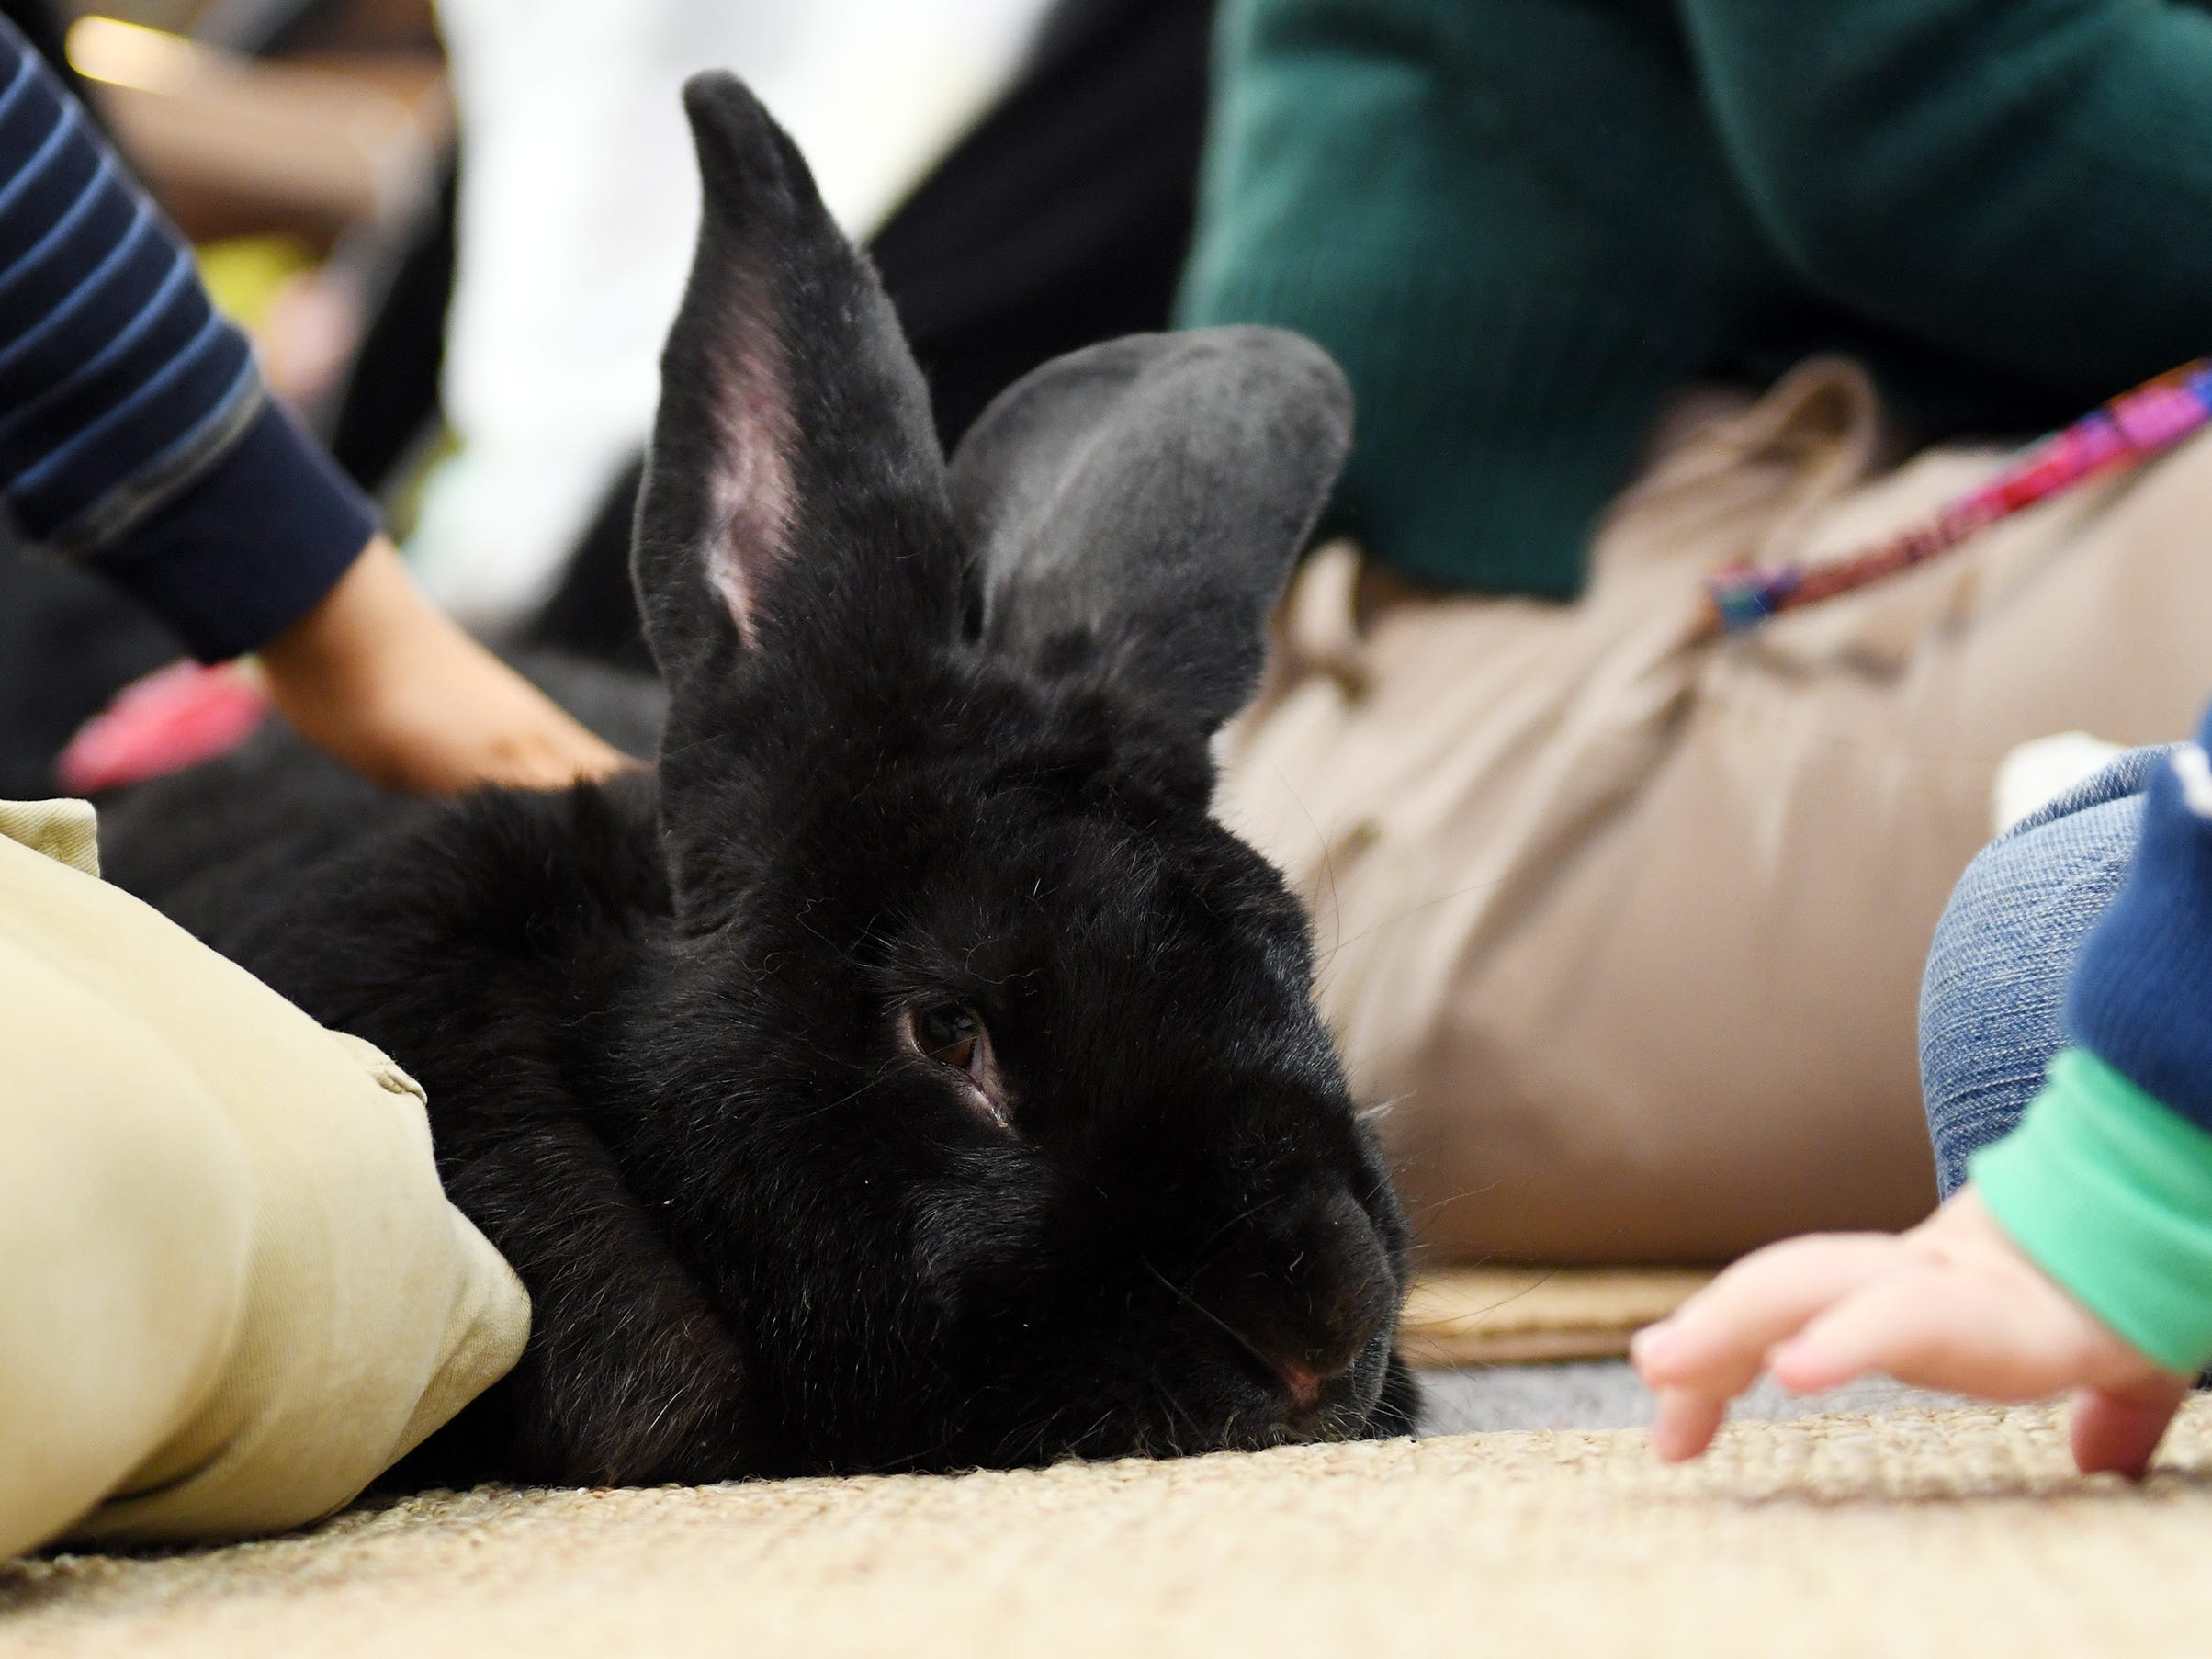 Kids interact with Hagrid, a Flemish Giant rabbit, during Zoobrary time at the Bridgeton Public Library on Thursday, December 20, 2018.